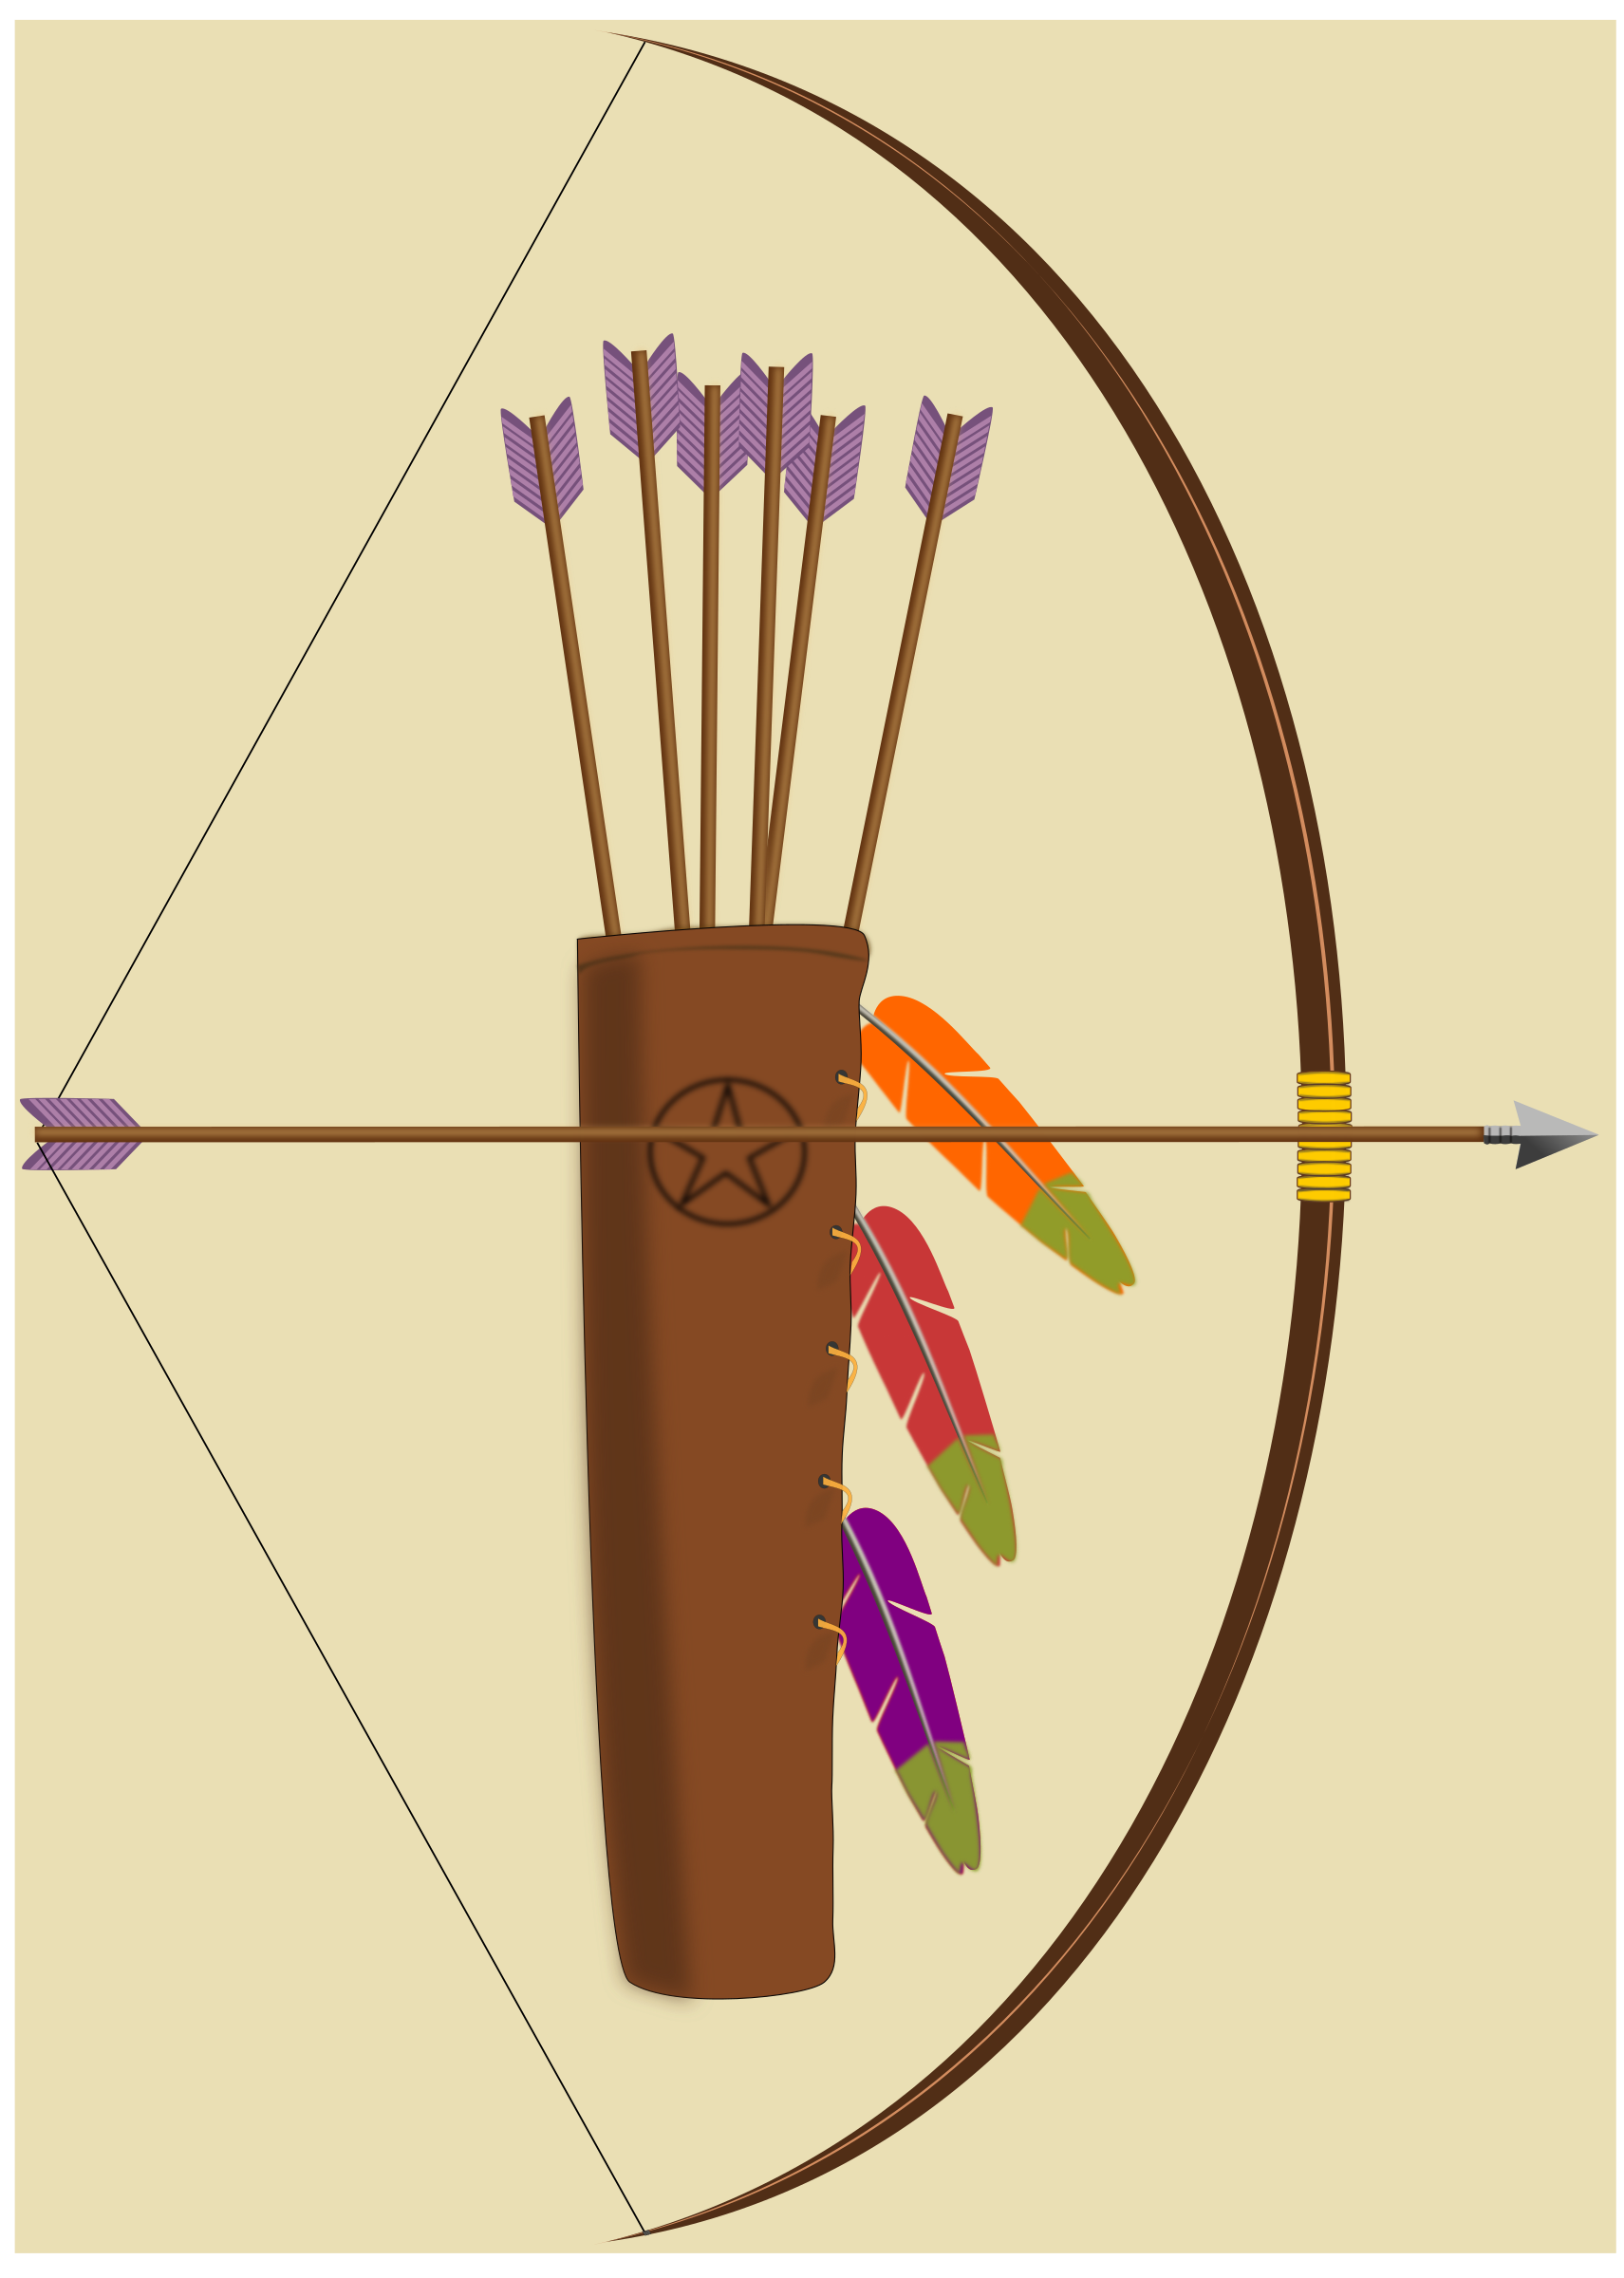 Hunter clipart archery. Bow arrow and quiver